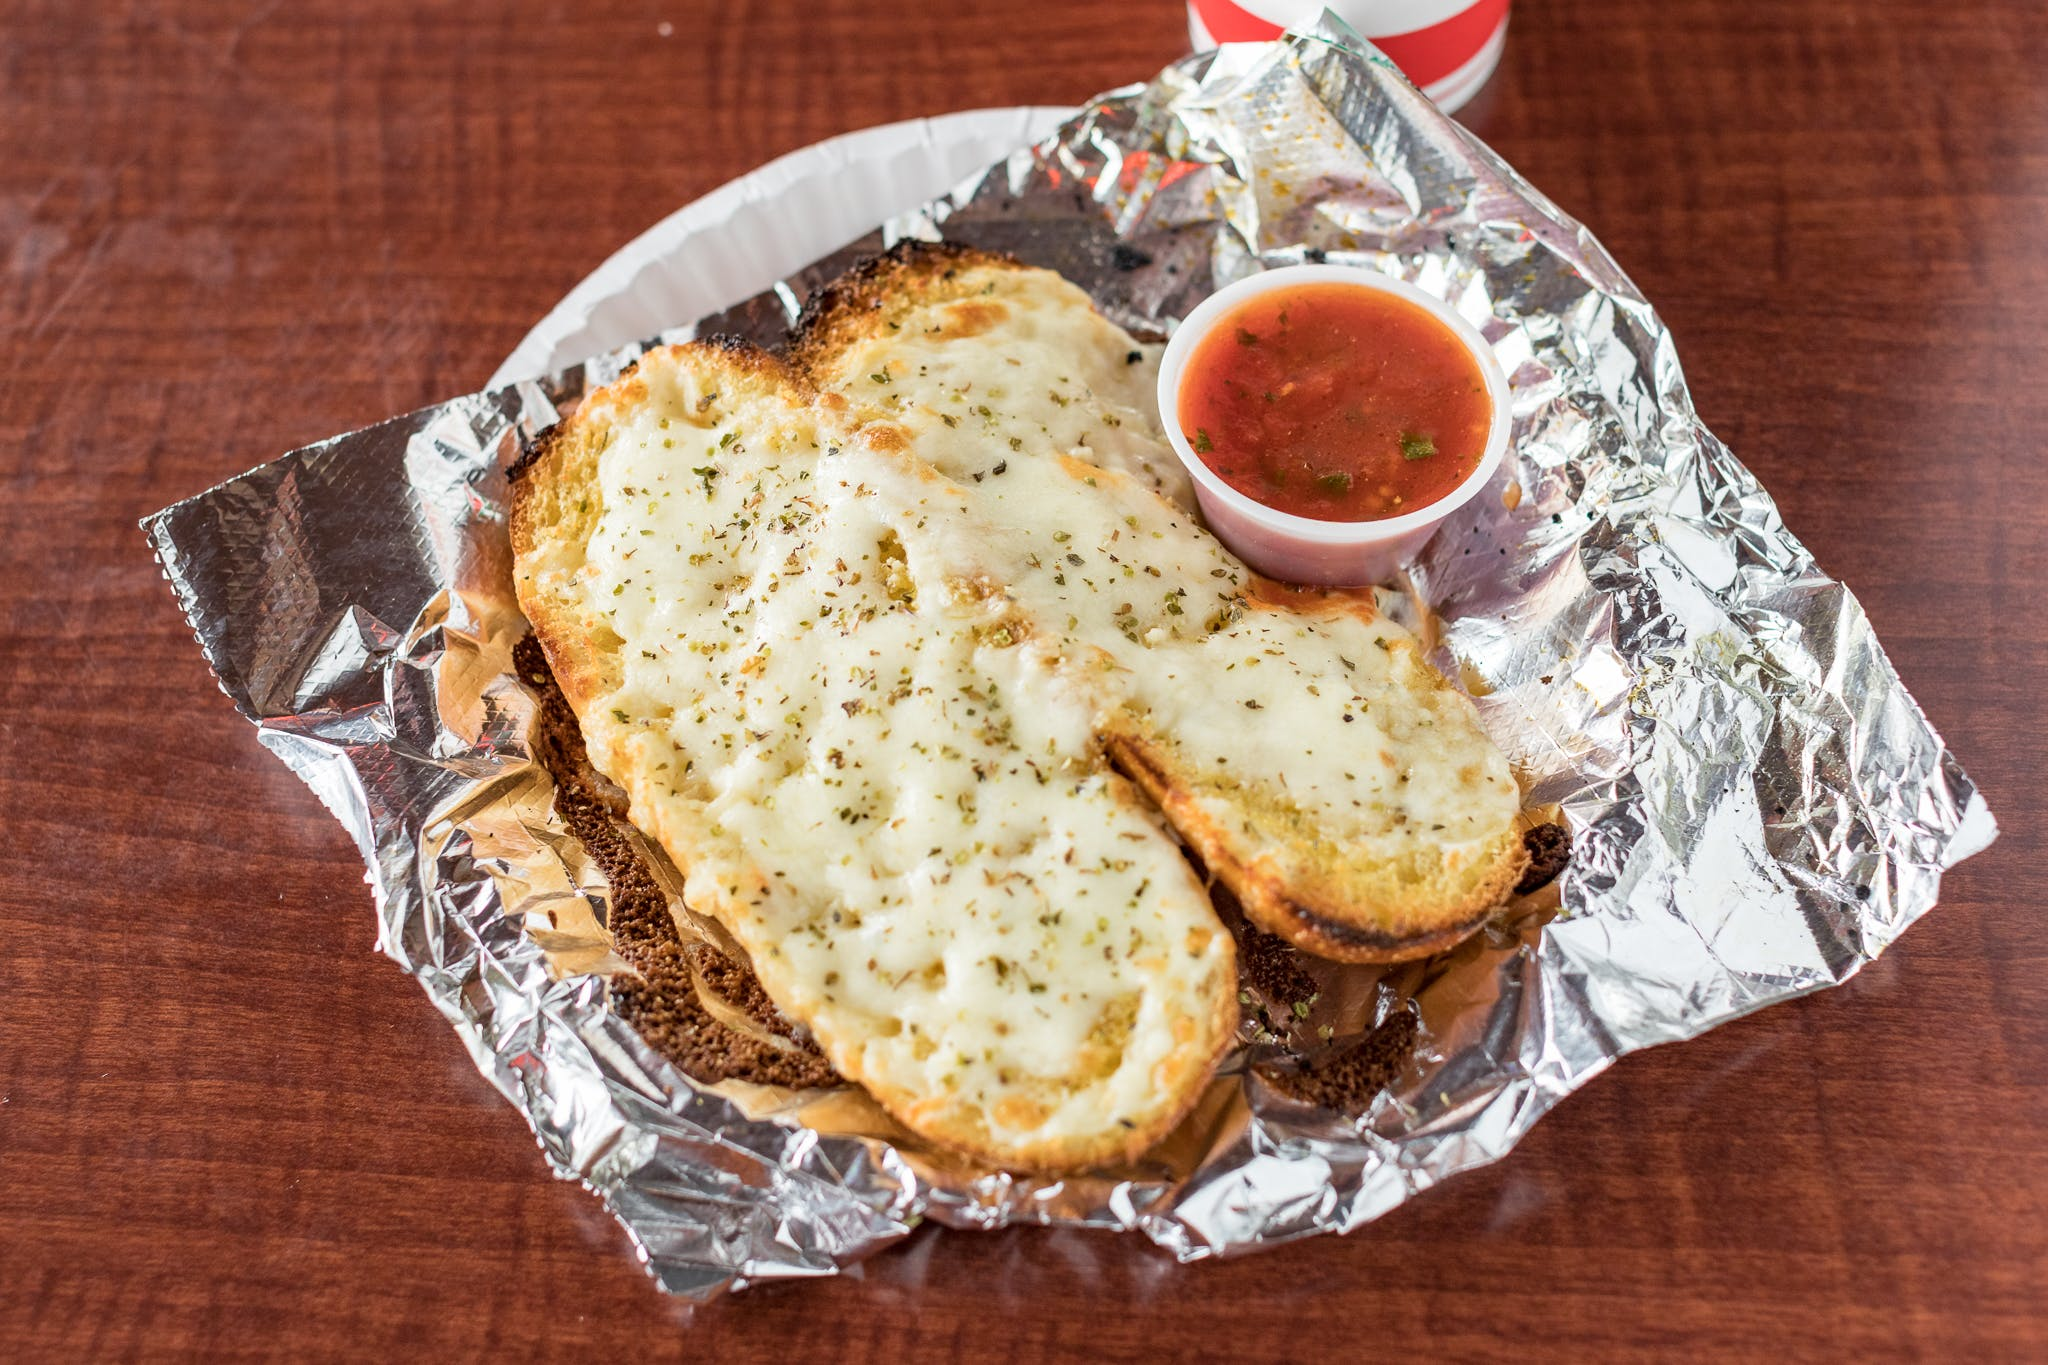 Cheesebread from Johnny's Pizza Shop in Eau Claire, WI